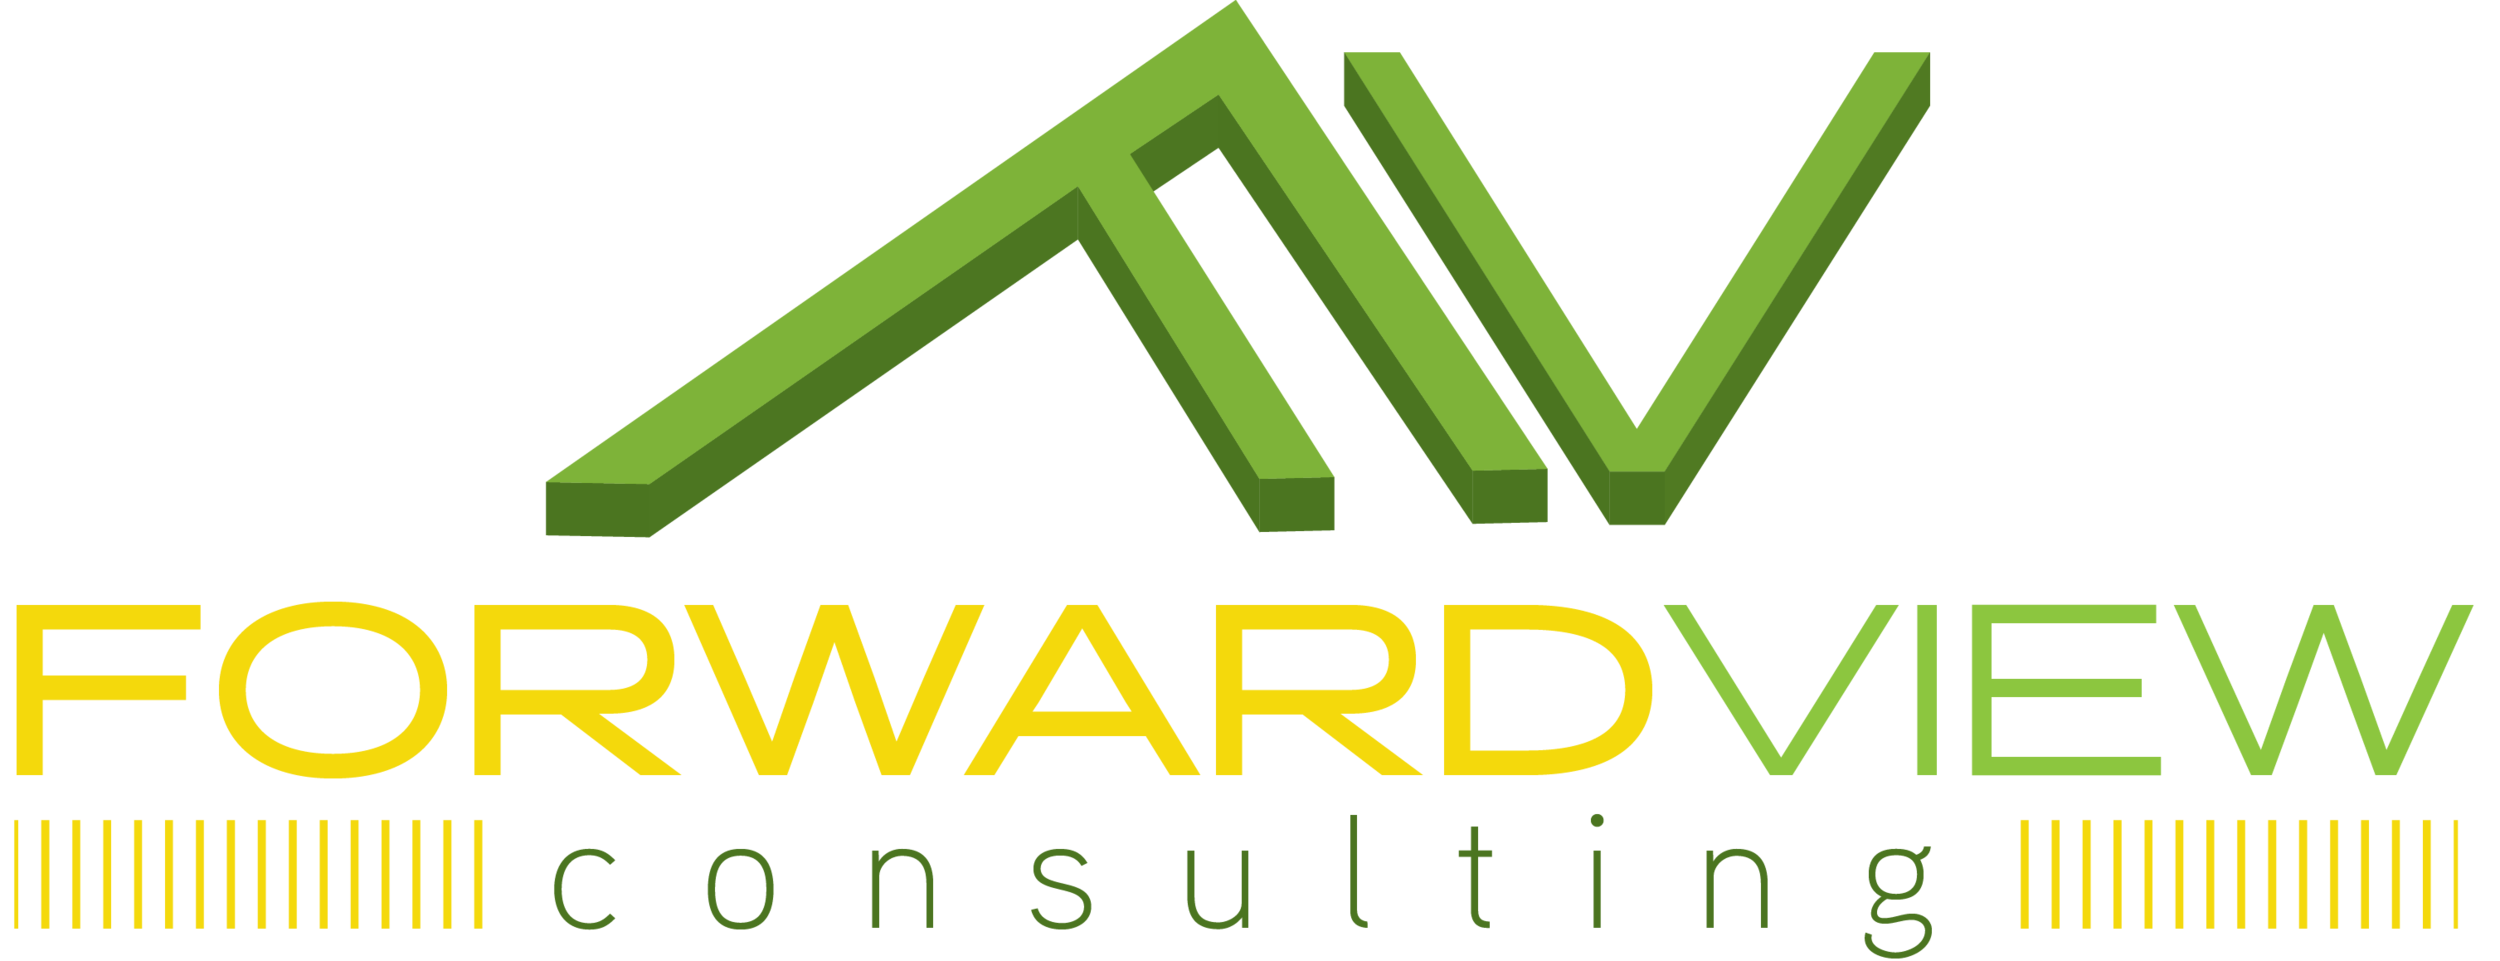 ForwardViewLogo1_2.png